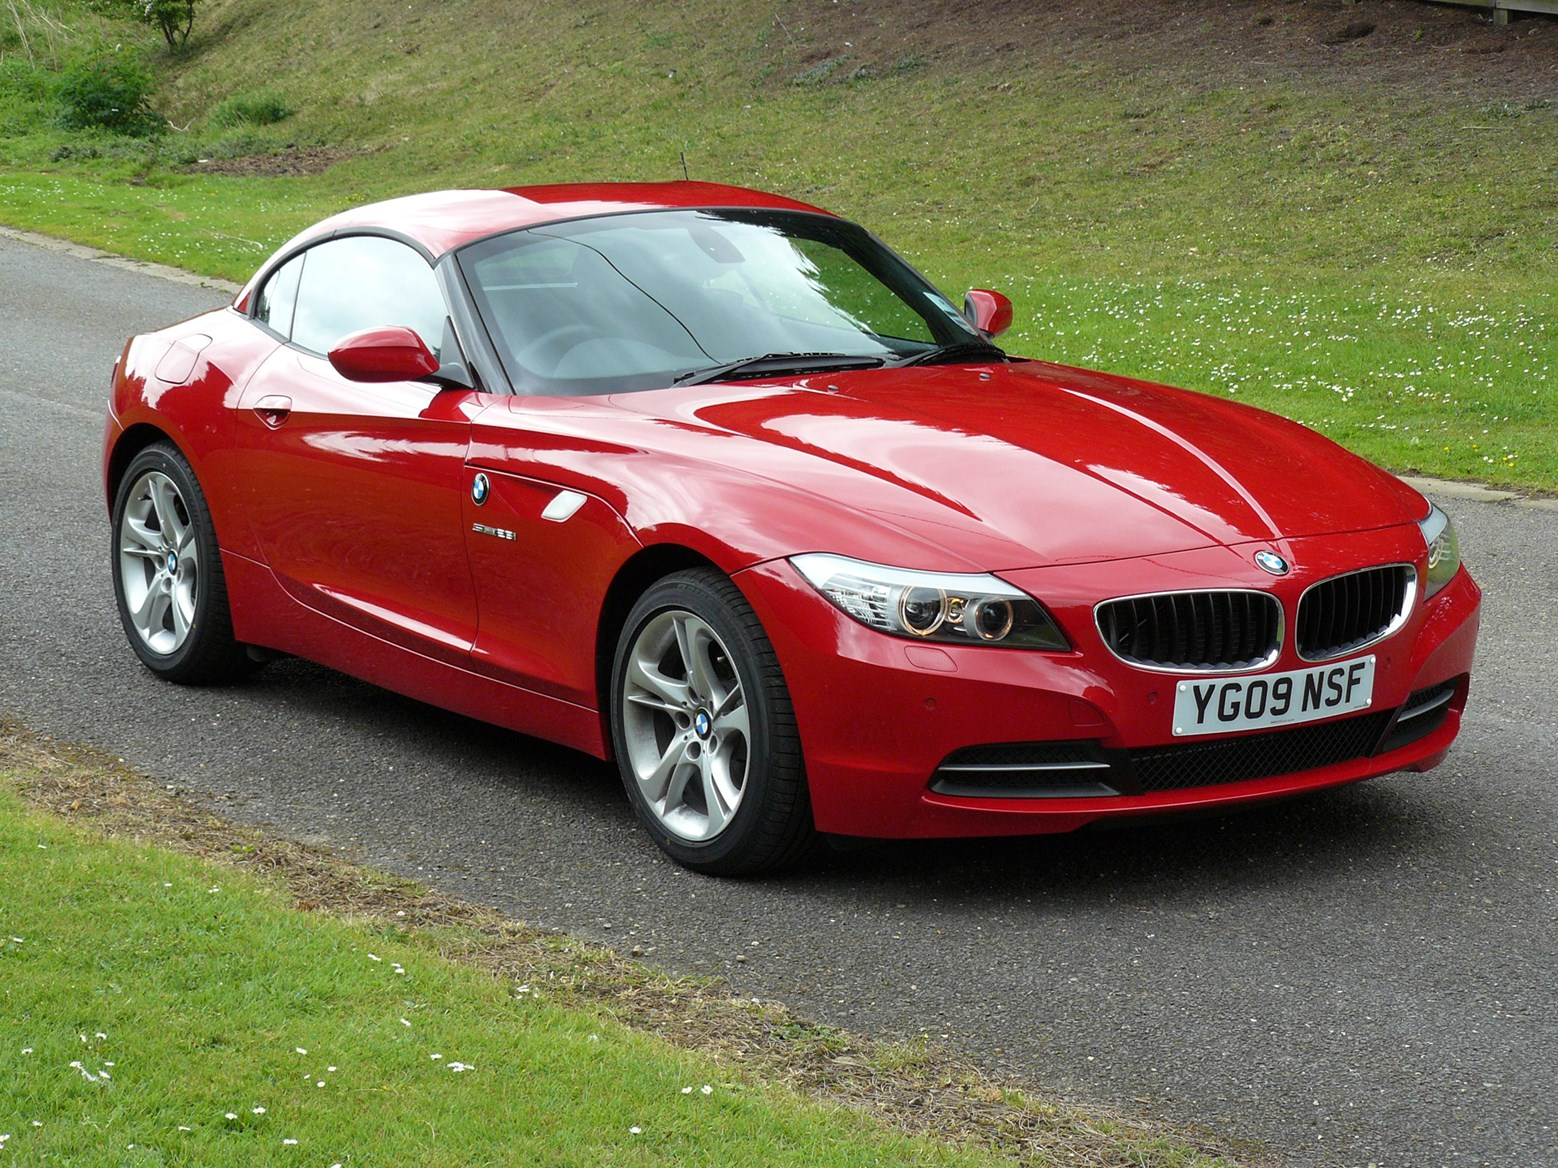 Bmw Z4 With Hardtop 2015 Bmw Z4 Review Prices Specs Bmw Z5 Looks Great In This Rendering 2018